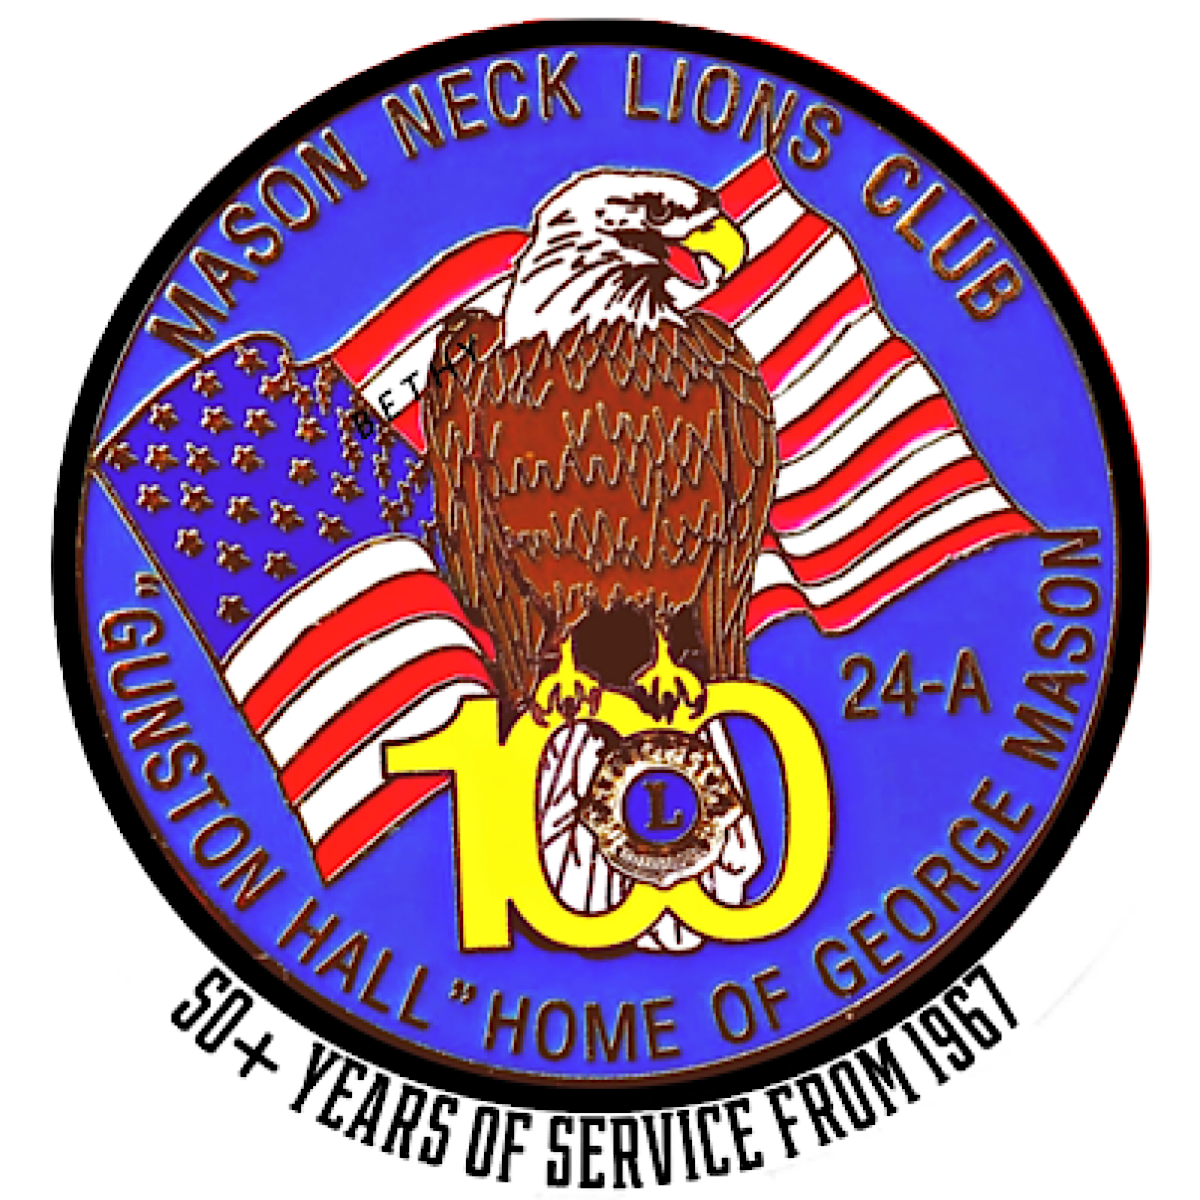 Mason Neck Lions Club #weserve